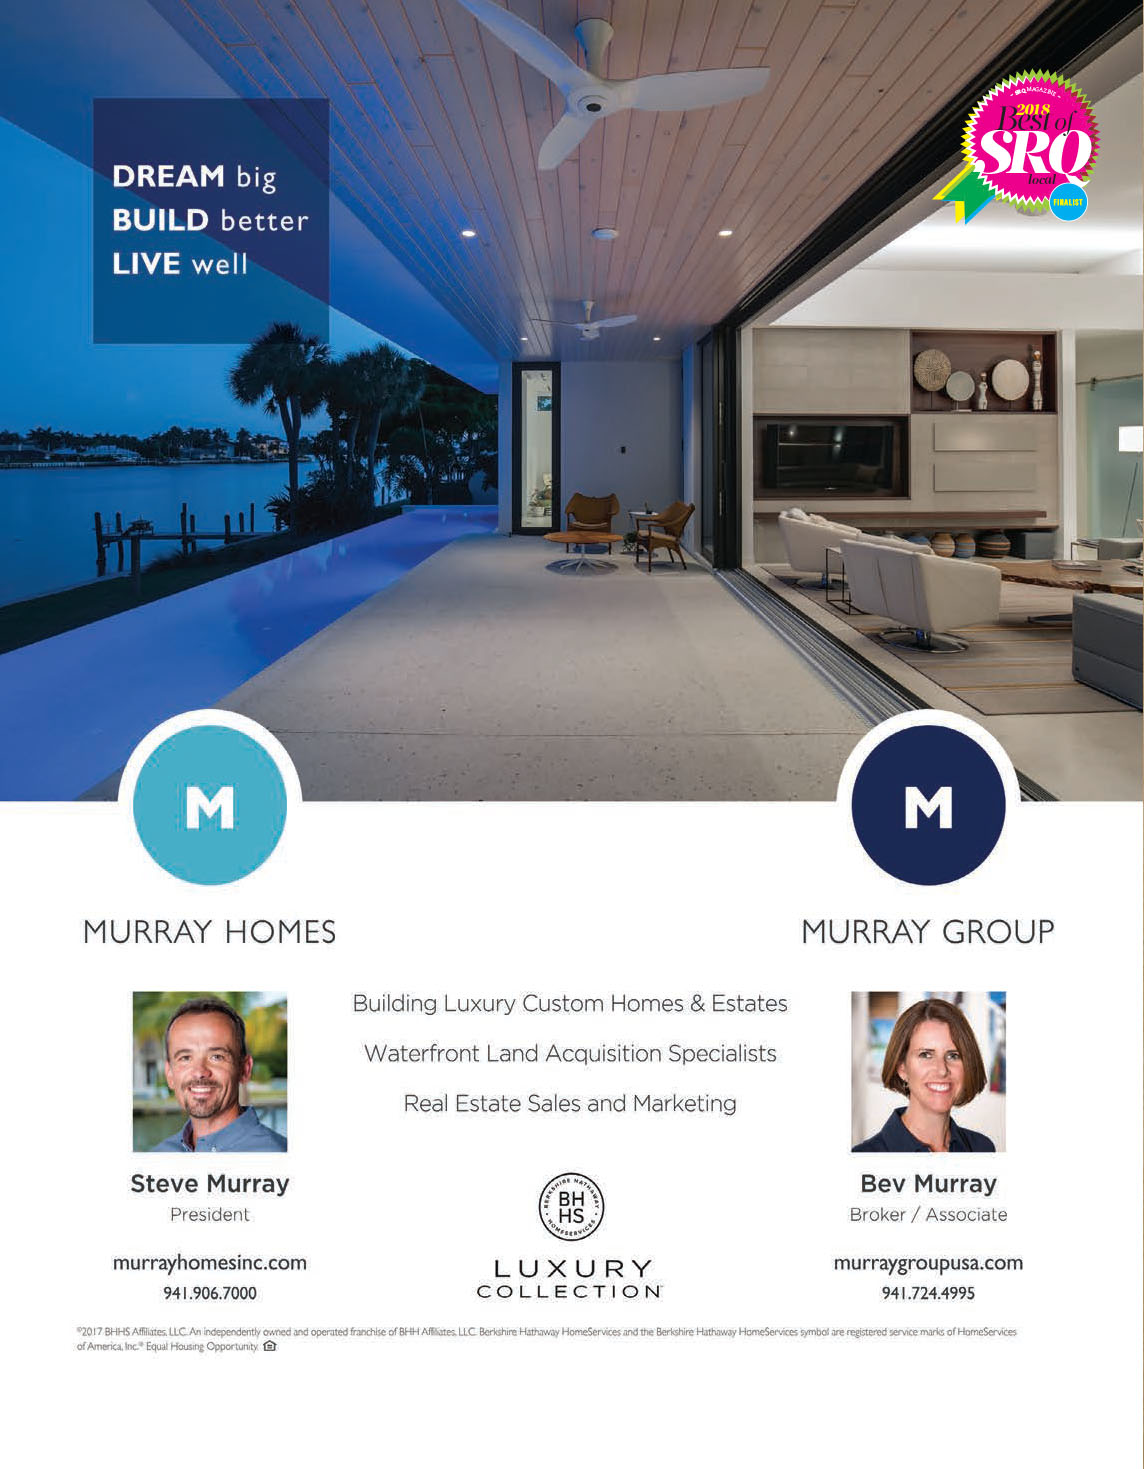 Murray Homes Gains Recognition As A 2018 SRQ